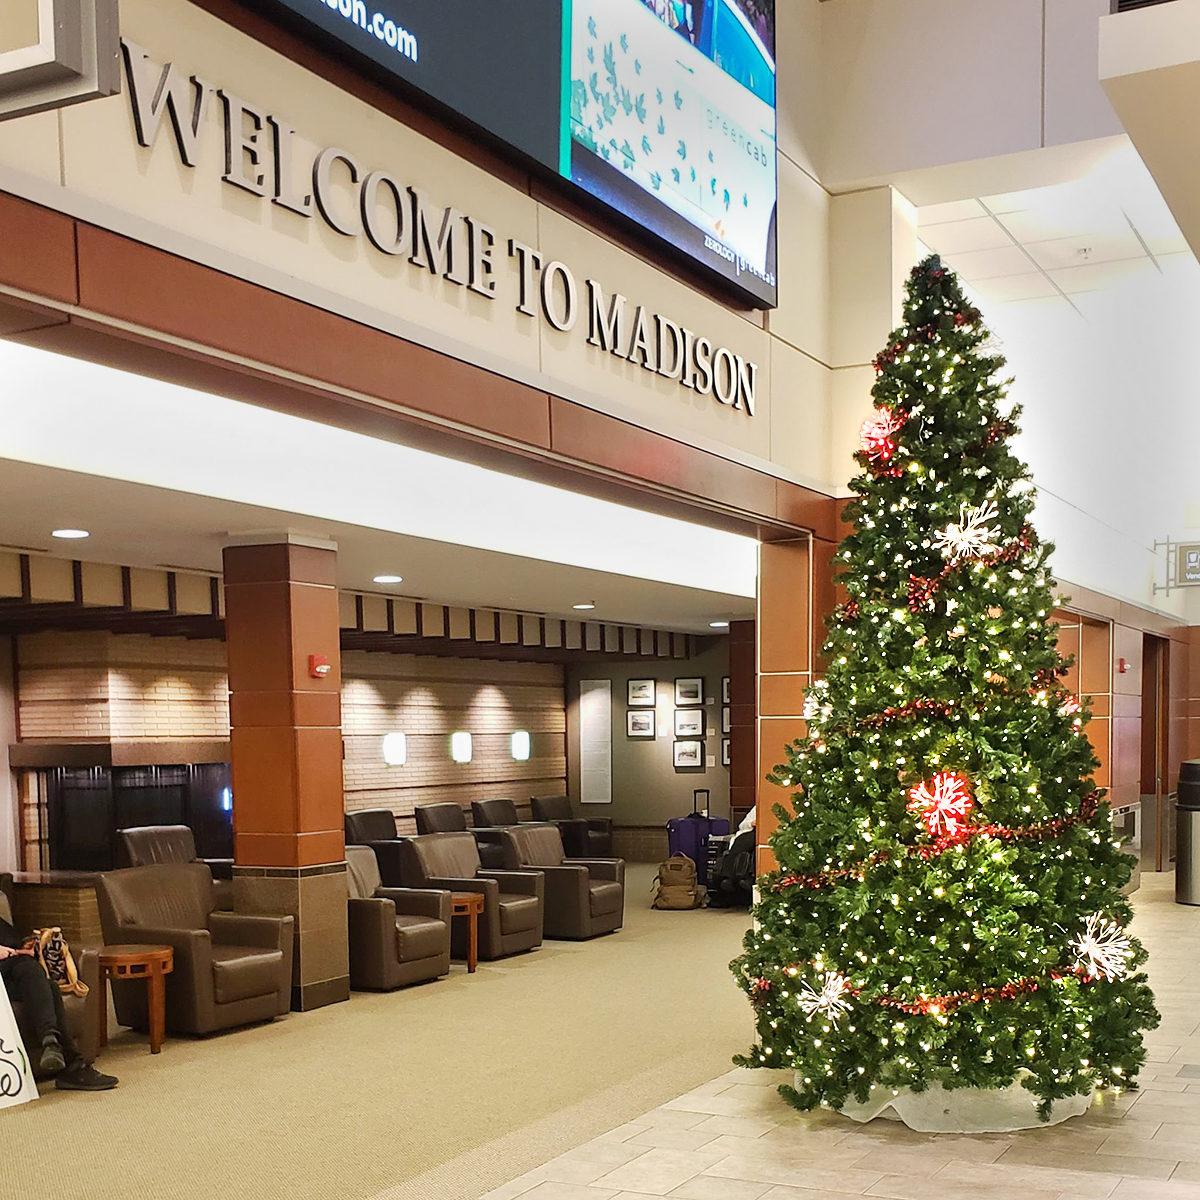 It's the most wonderful time of the year and here at MSN Airport we are full of holiday cheer! We hope you enjoy our holiday-themed décor as you make your way through the airport.   #happyholidays #holidays #holidaytravel #travel #MSNAirport